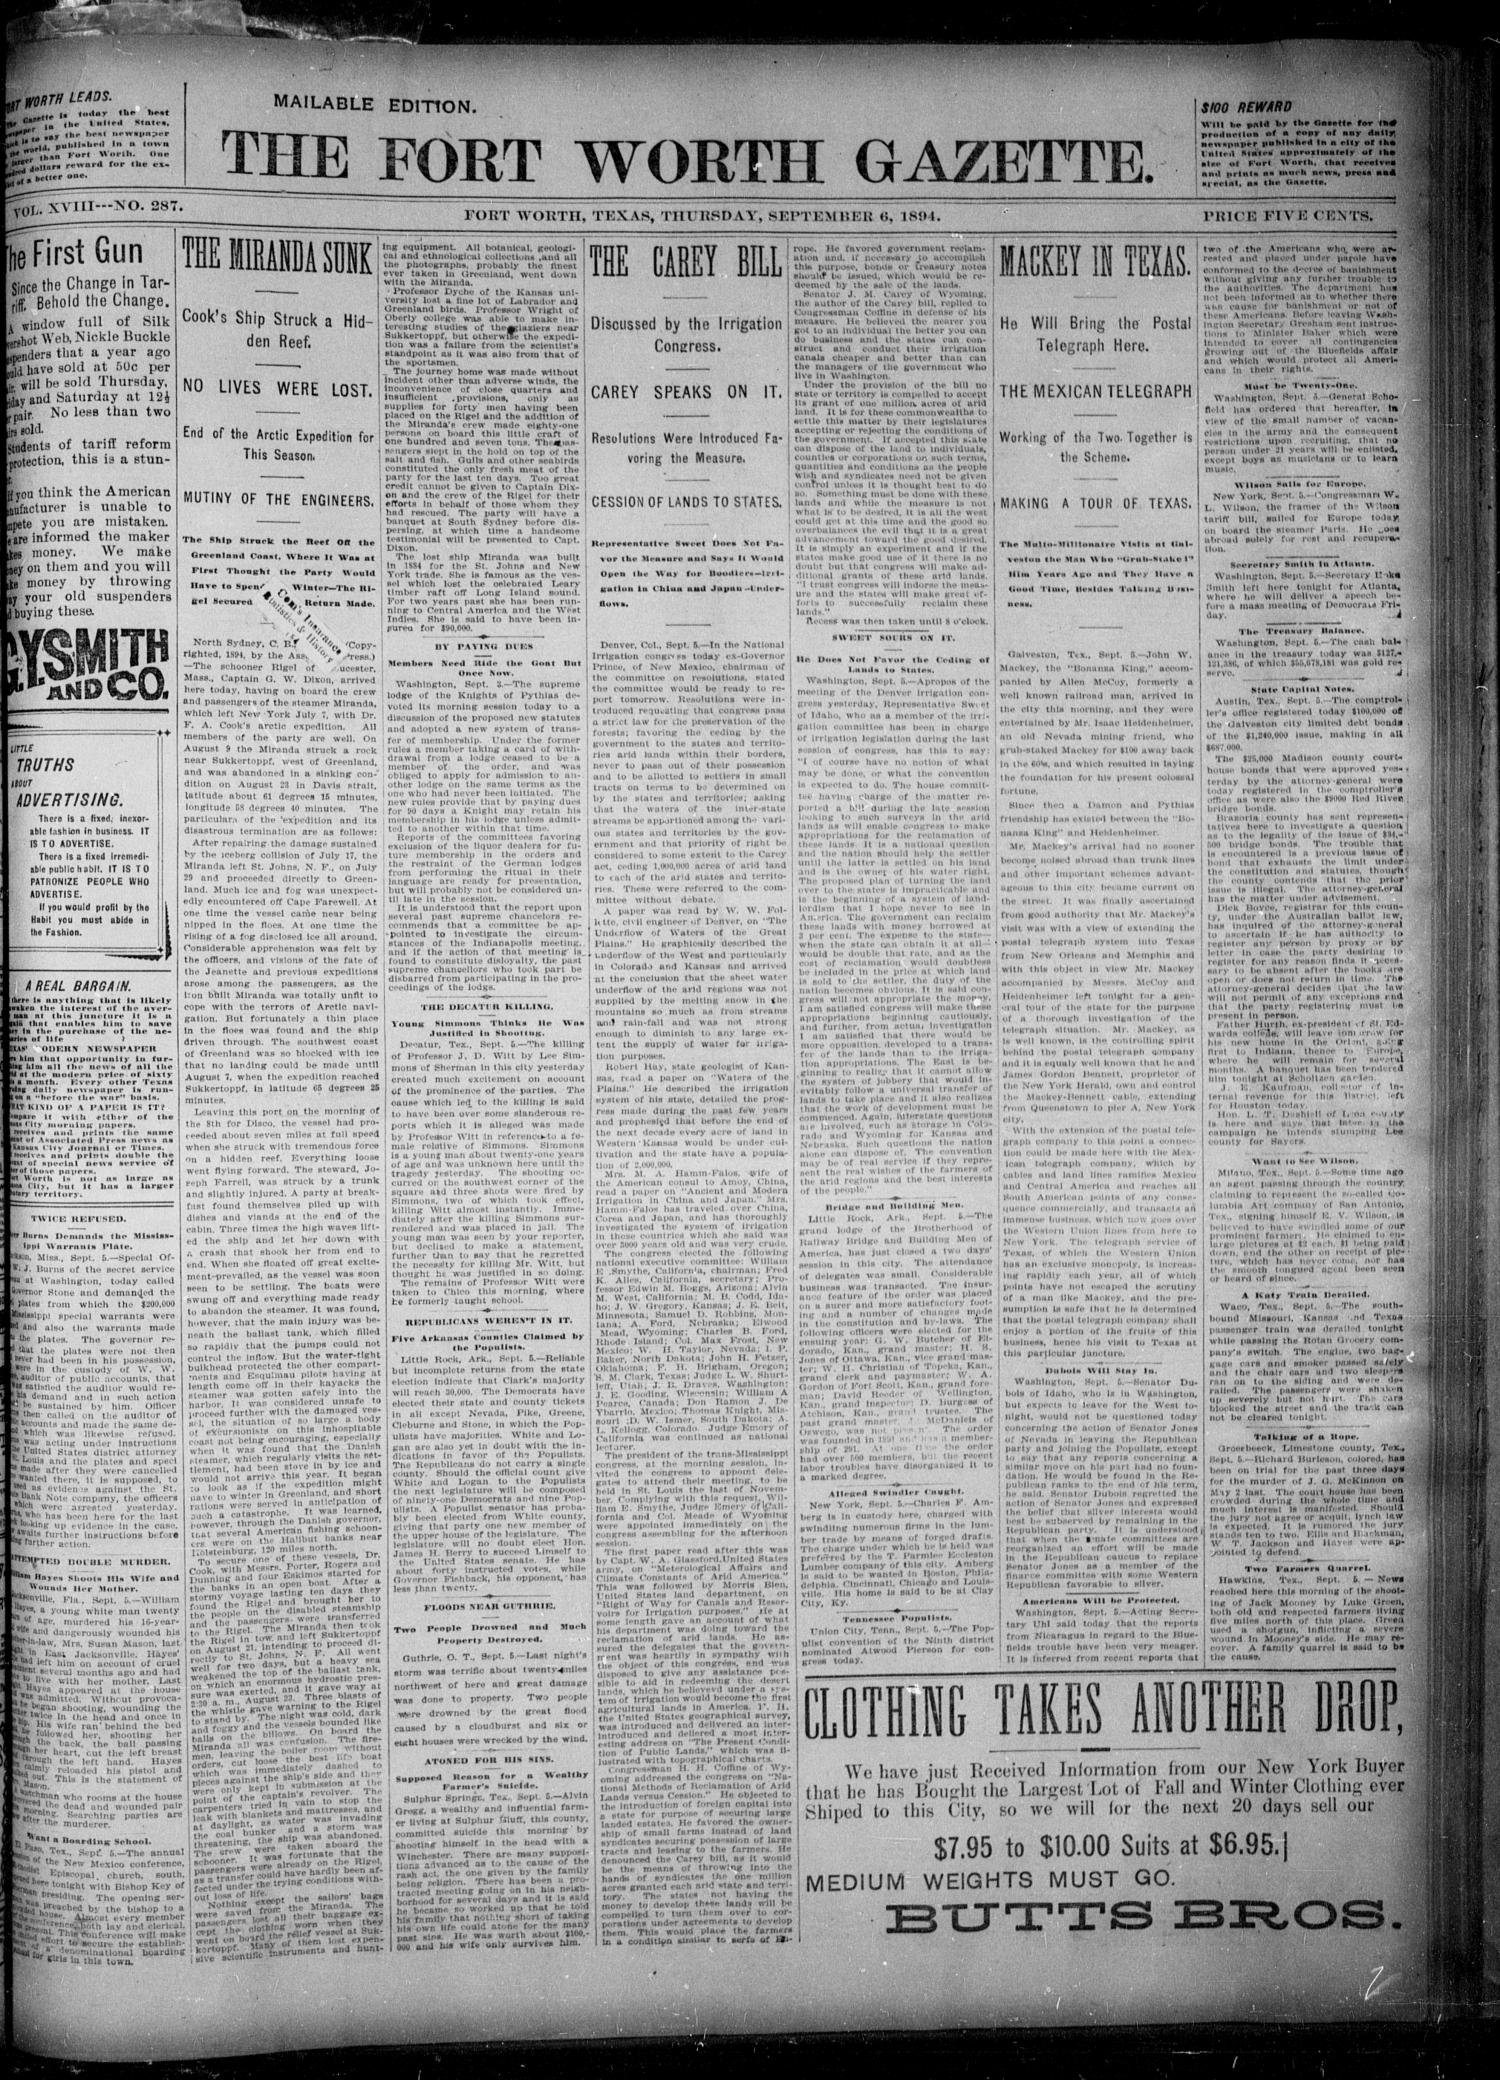 Fort Worth Gazette. (Fort Worth, Tex.), Vol. 18, No. 287, Ed. 1, Thursday, September 6, 1894                                                                                                      [Sequence #]: 1 of 8